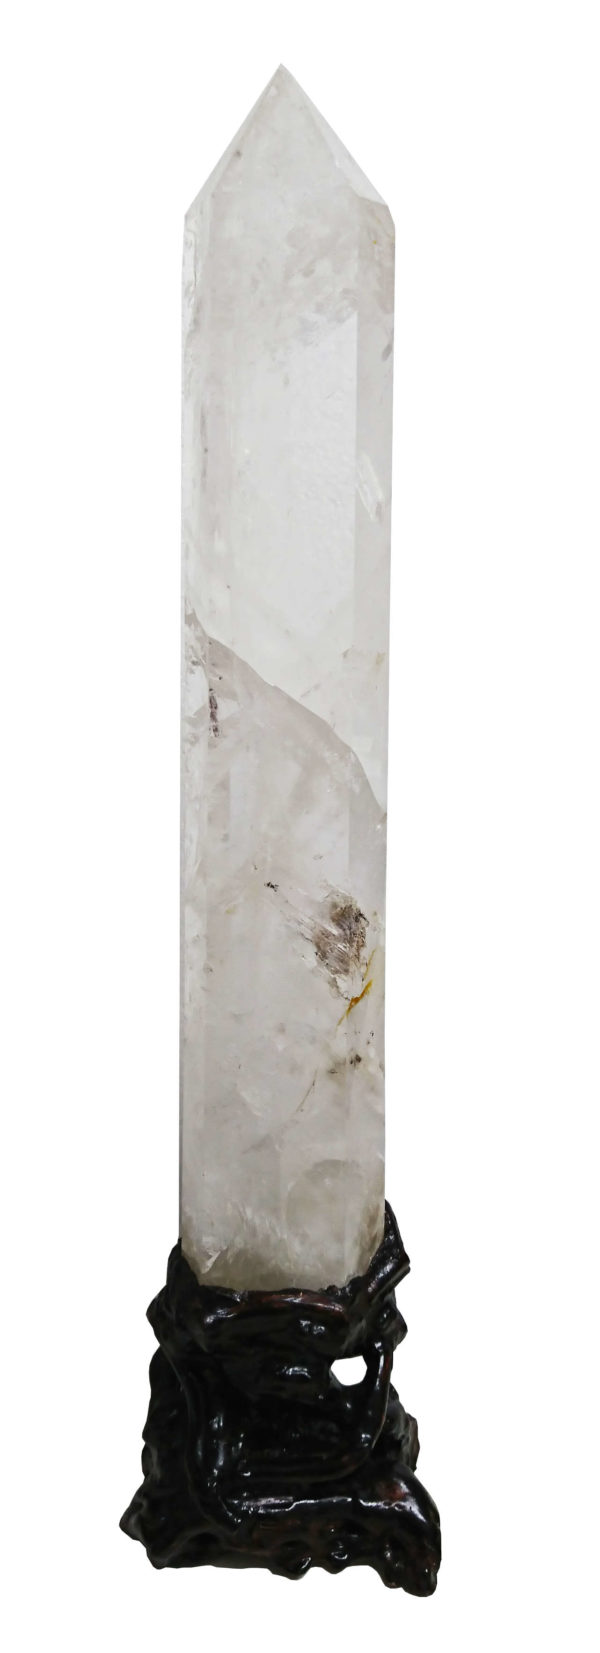 Quartz point on wooden stand, 62cm high